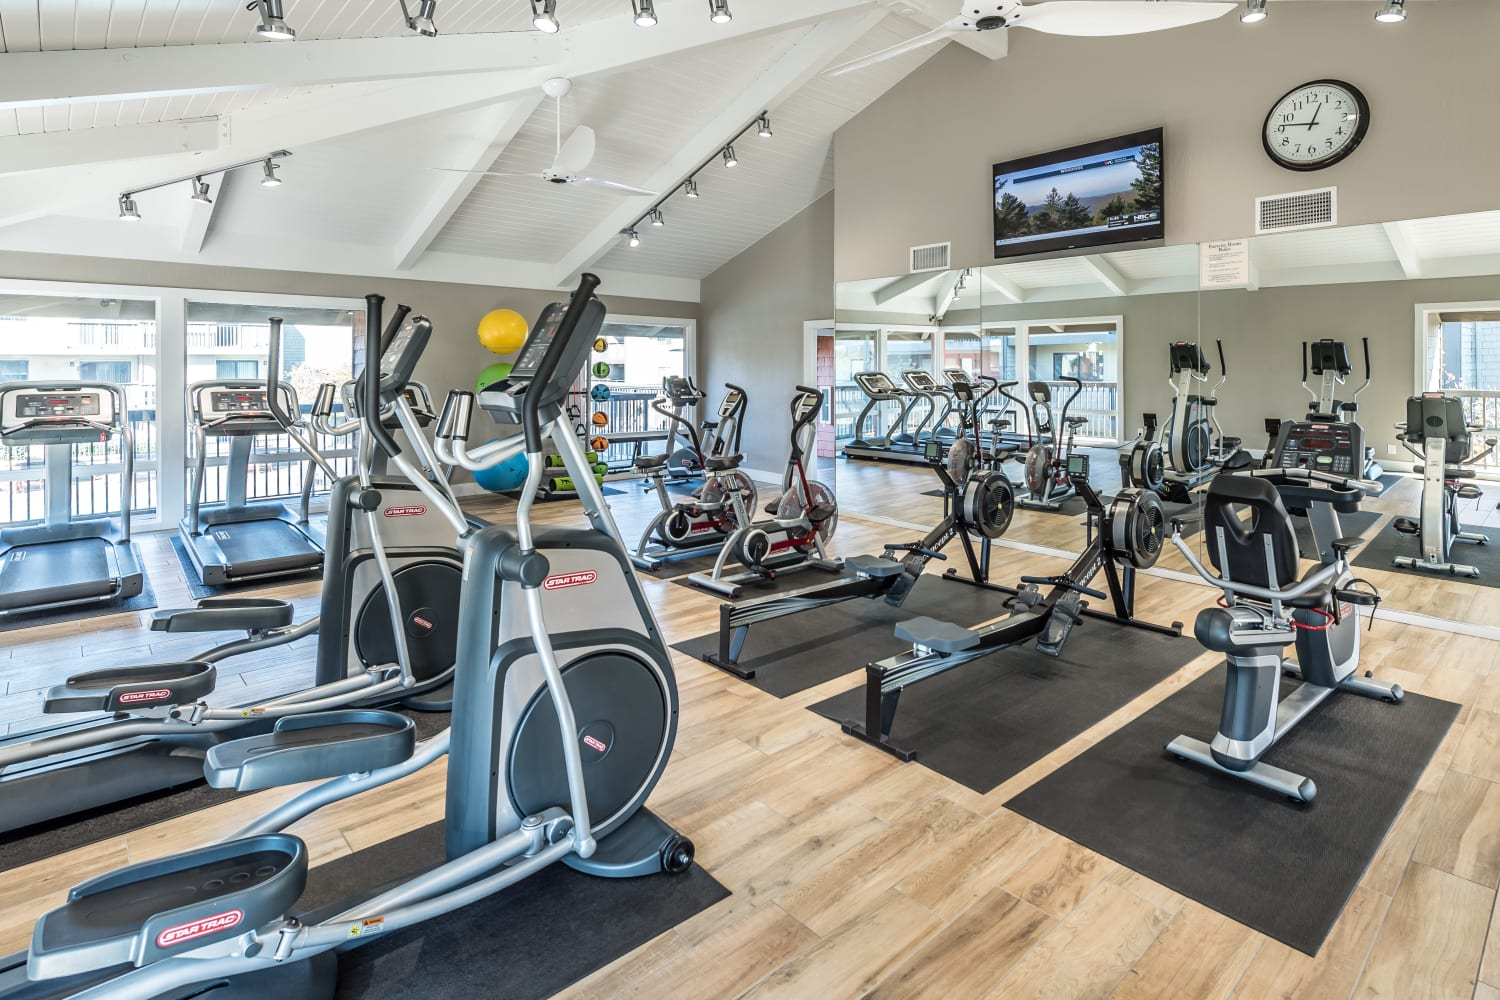 Harbor Cove Apartments in Foster City, California, offer a fitness center with a variety of equipment